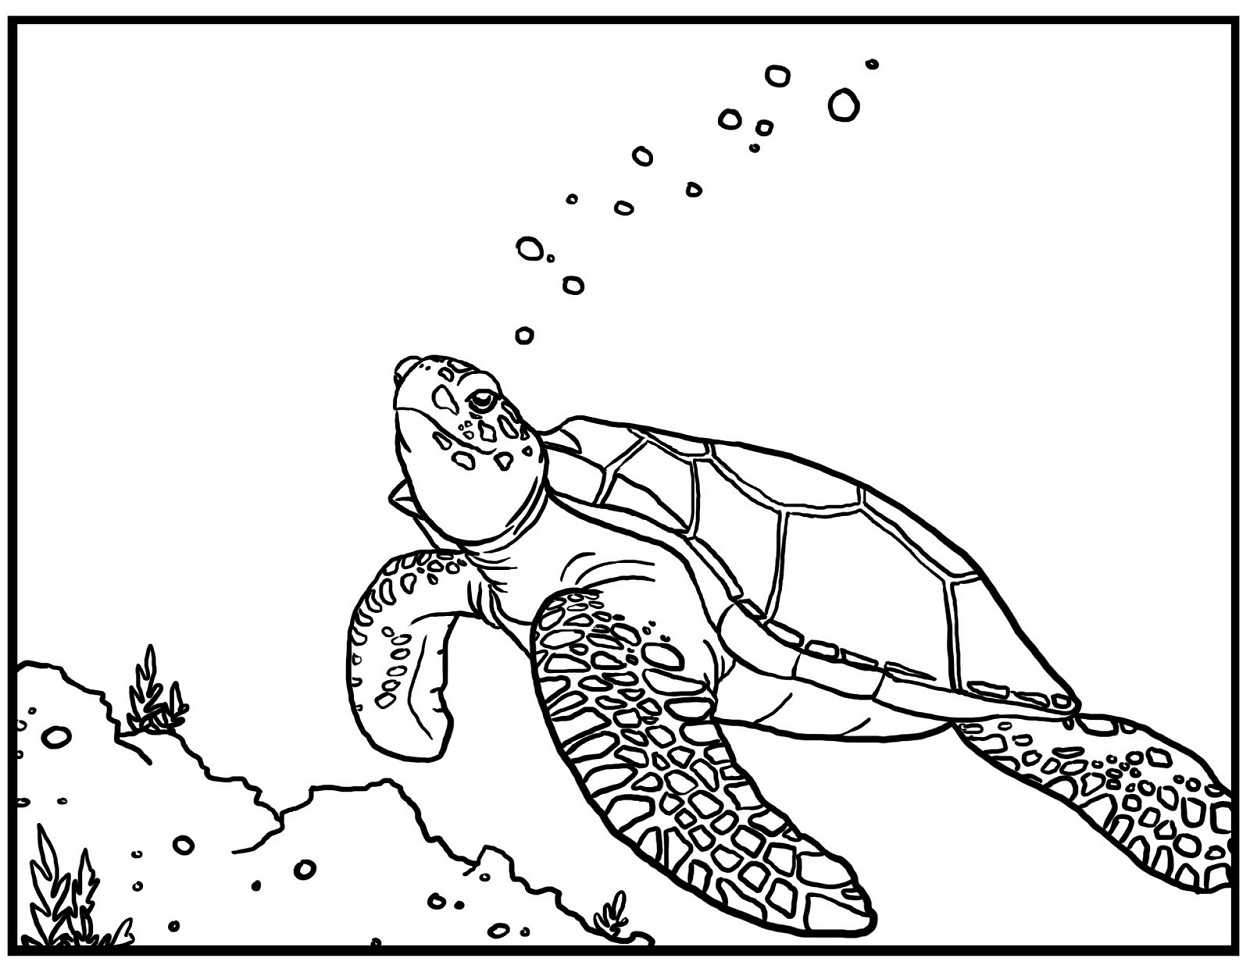 Drawn sea turtle printable  coloring pages coloring Turtle